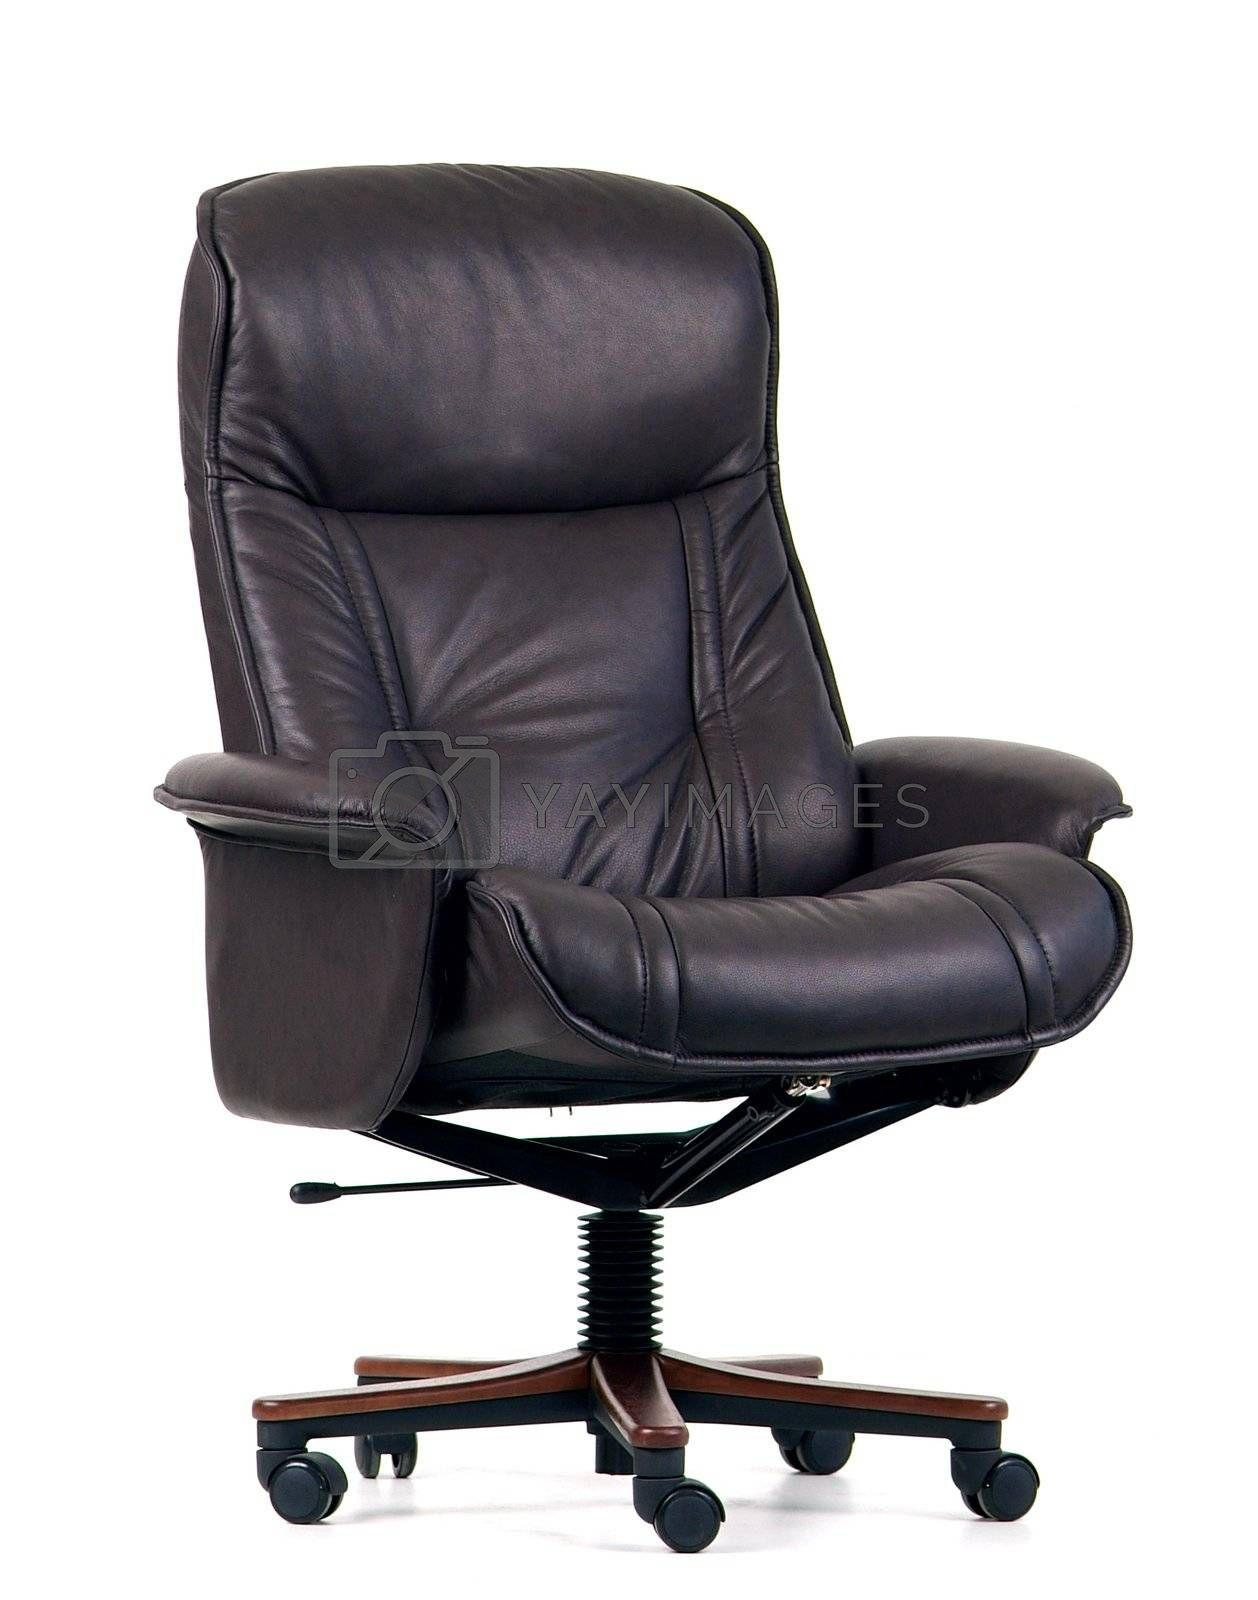 Black leather luxury office chair by epixx